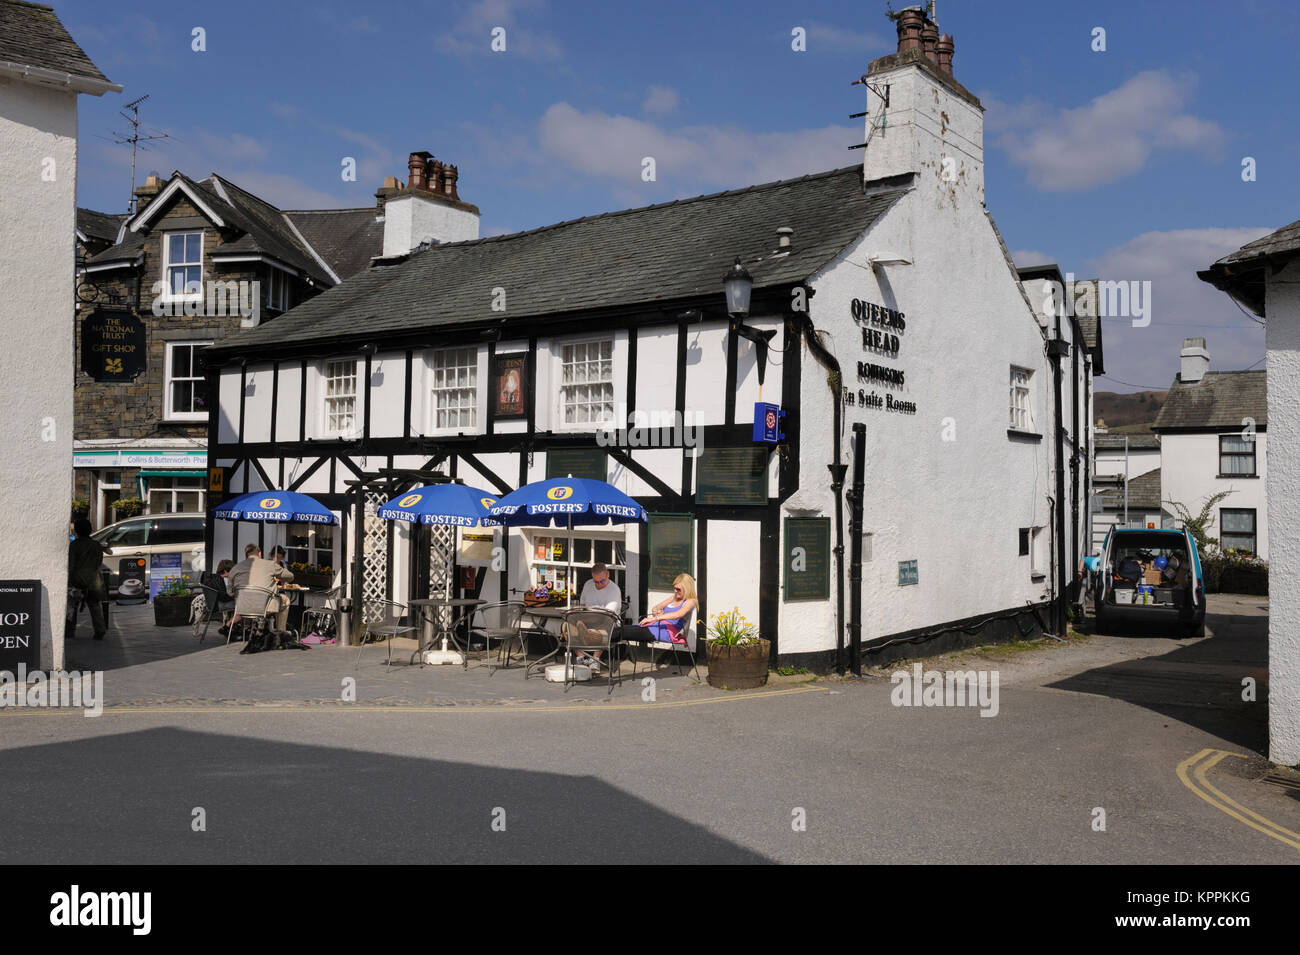 Queens Head Hotel and pub in Hawkshead in the English Lake District Cumbria UK - Stock Image